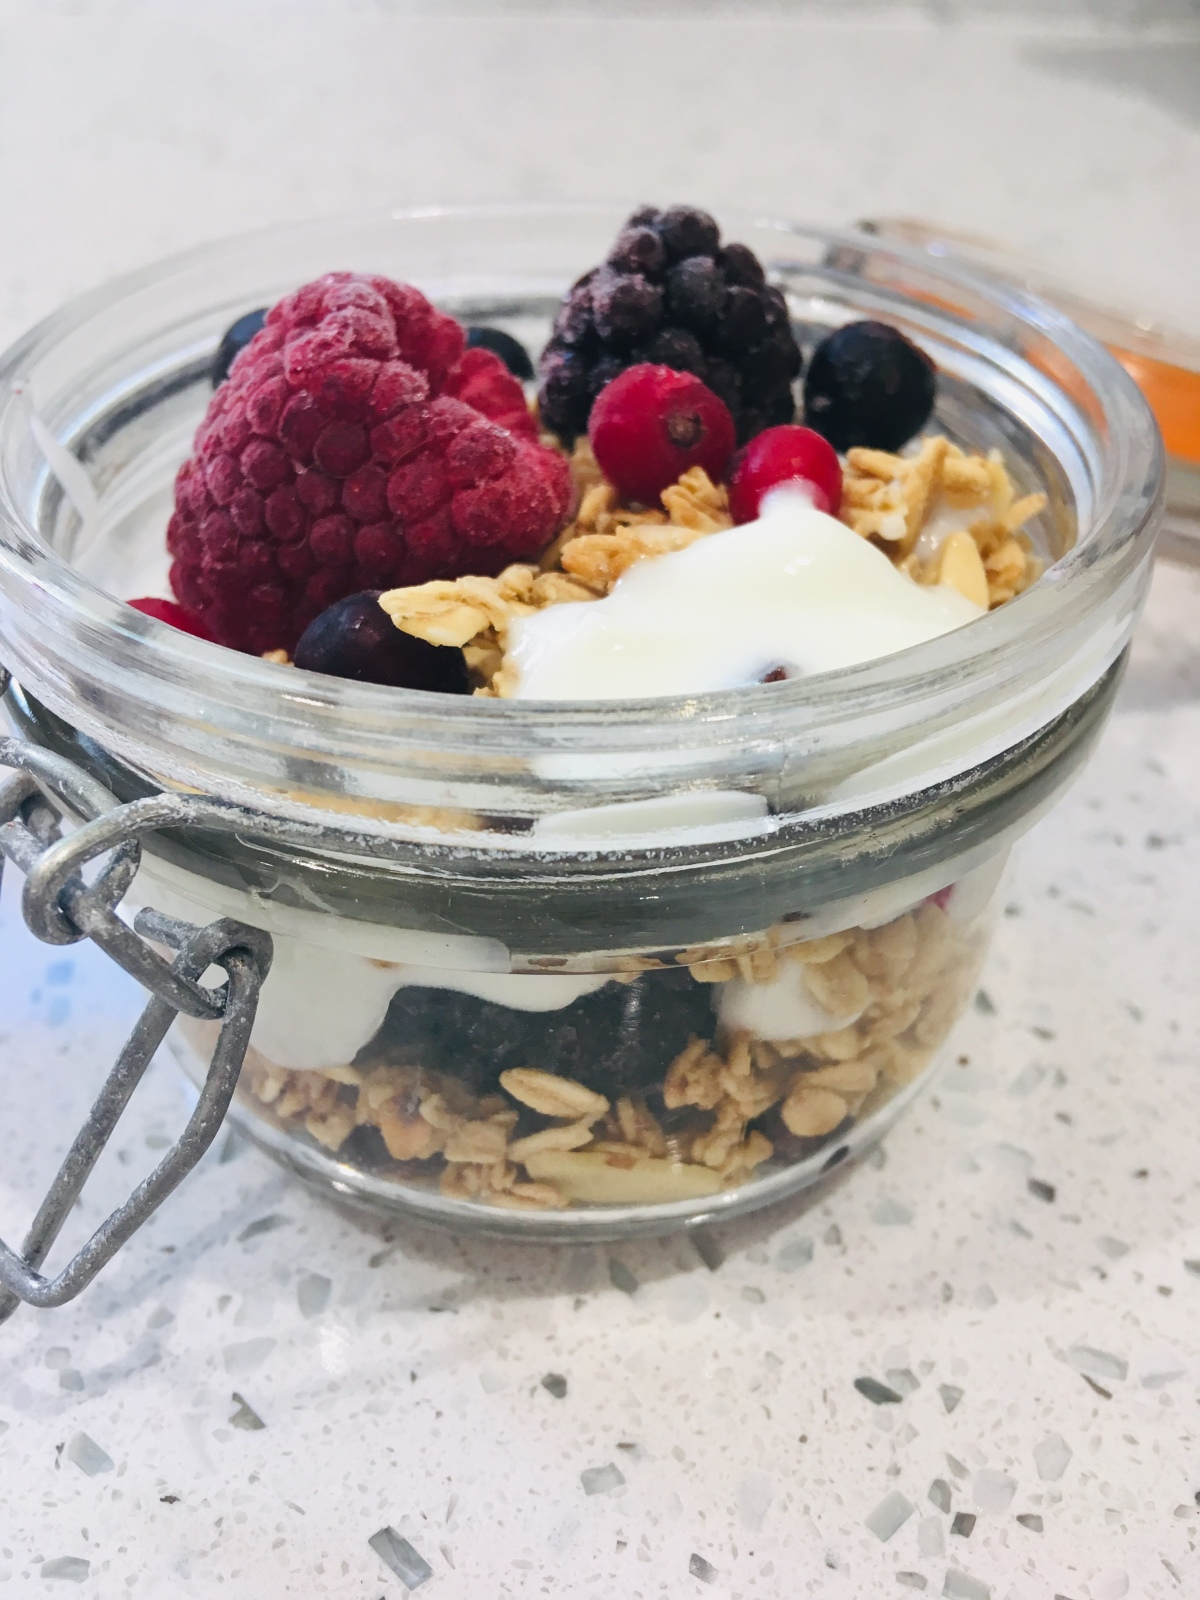 Healthy Breakfast Pots – The Grab & Go Way